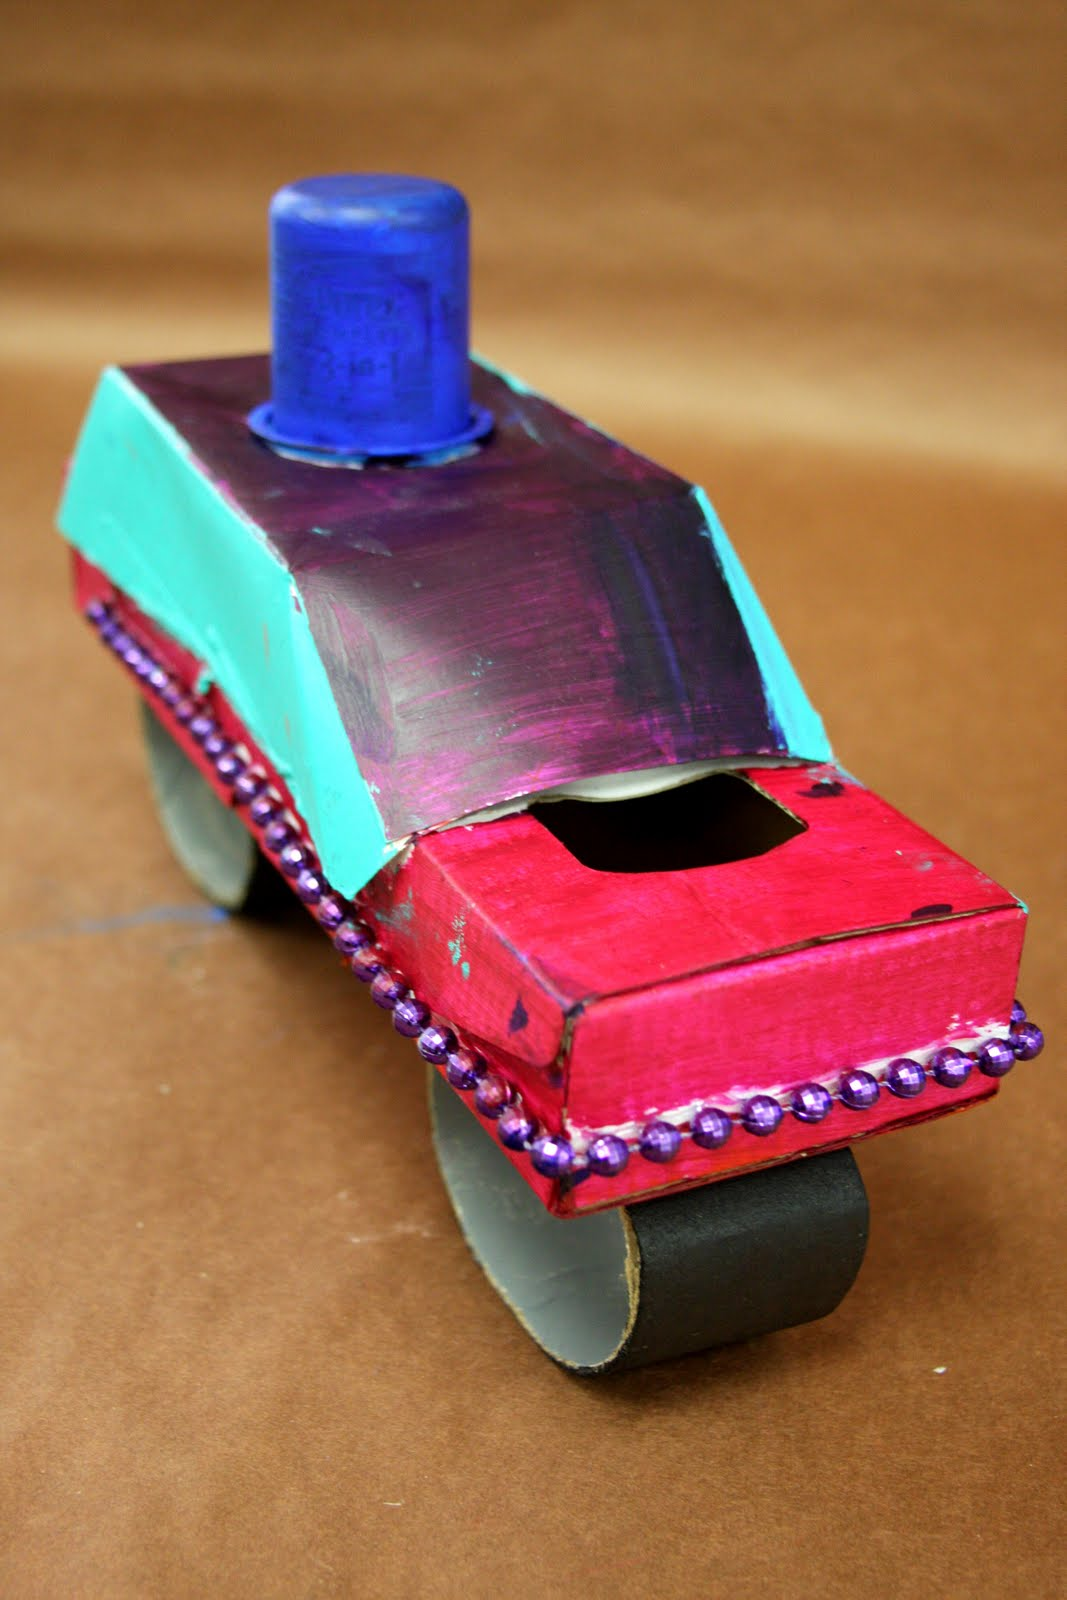 Simple machines project ideas - Briargrove Elementary Art Page